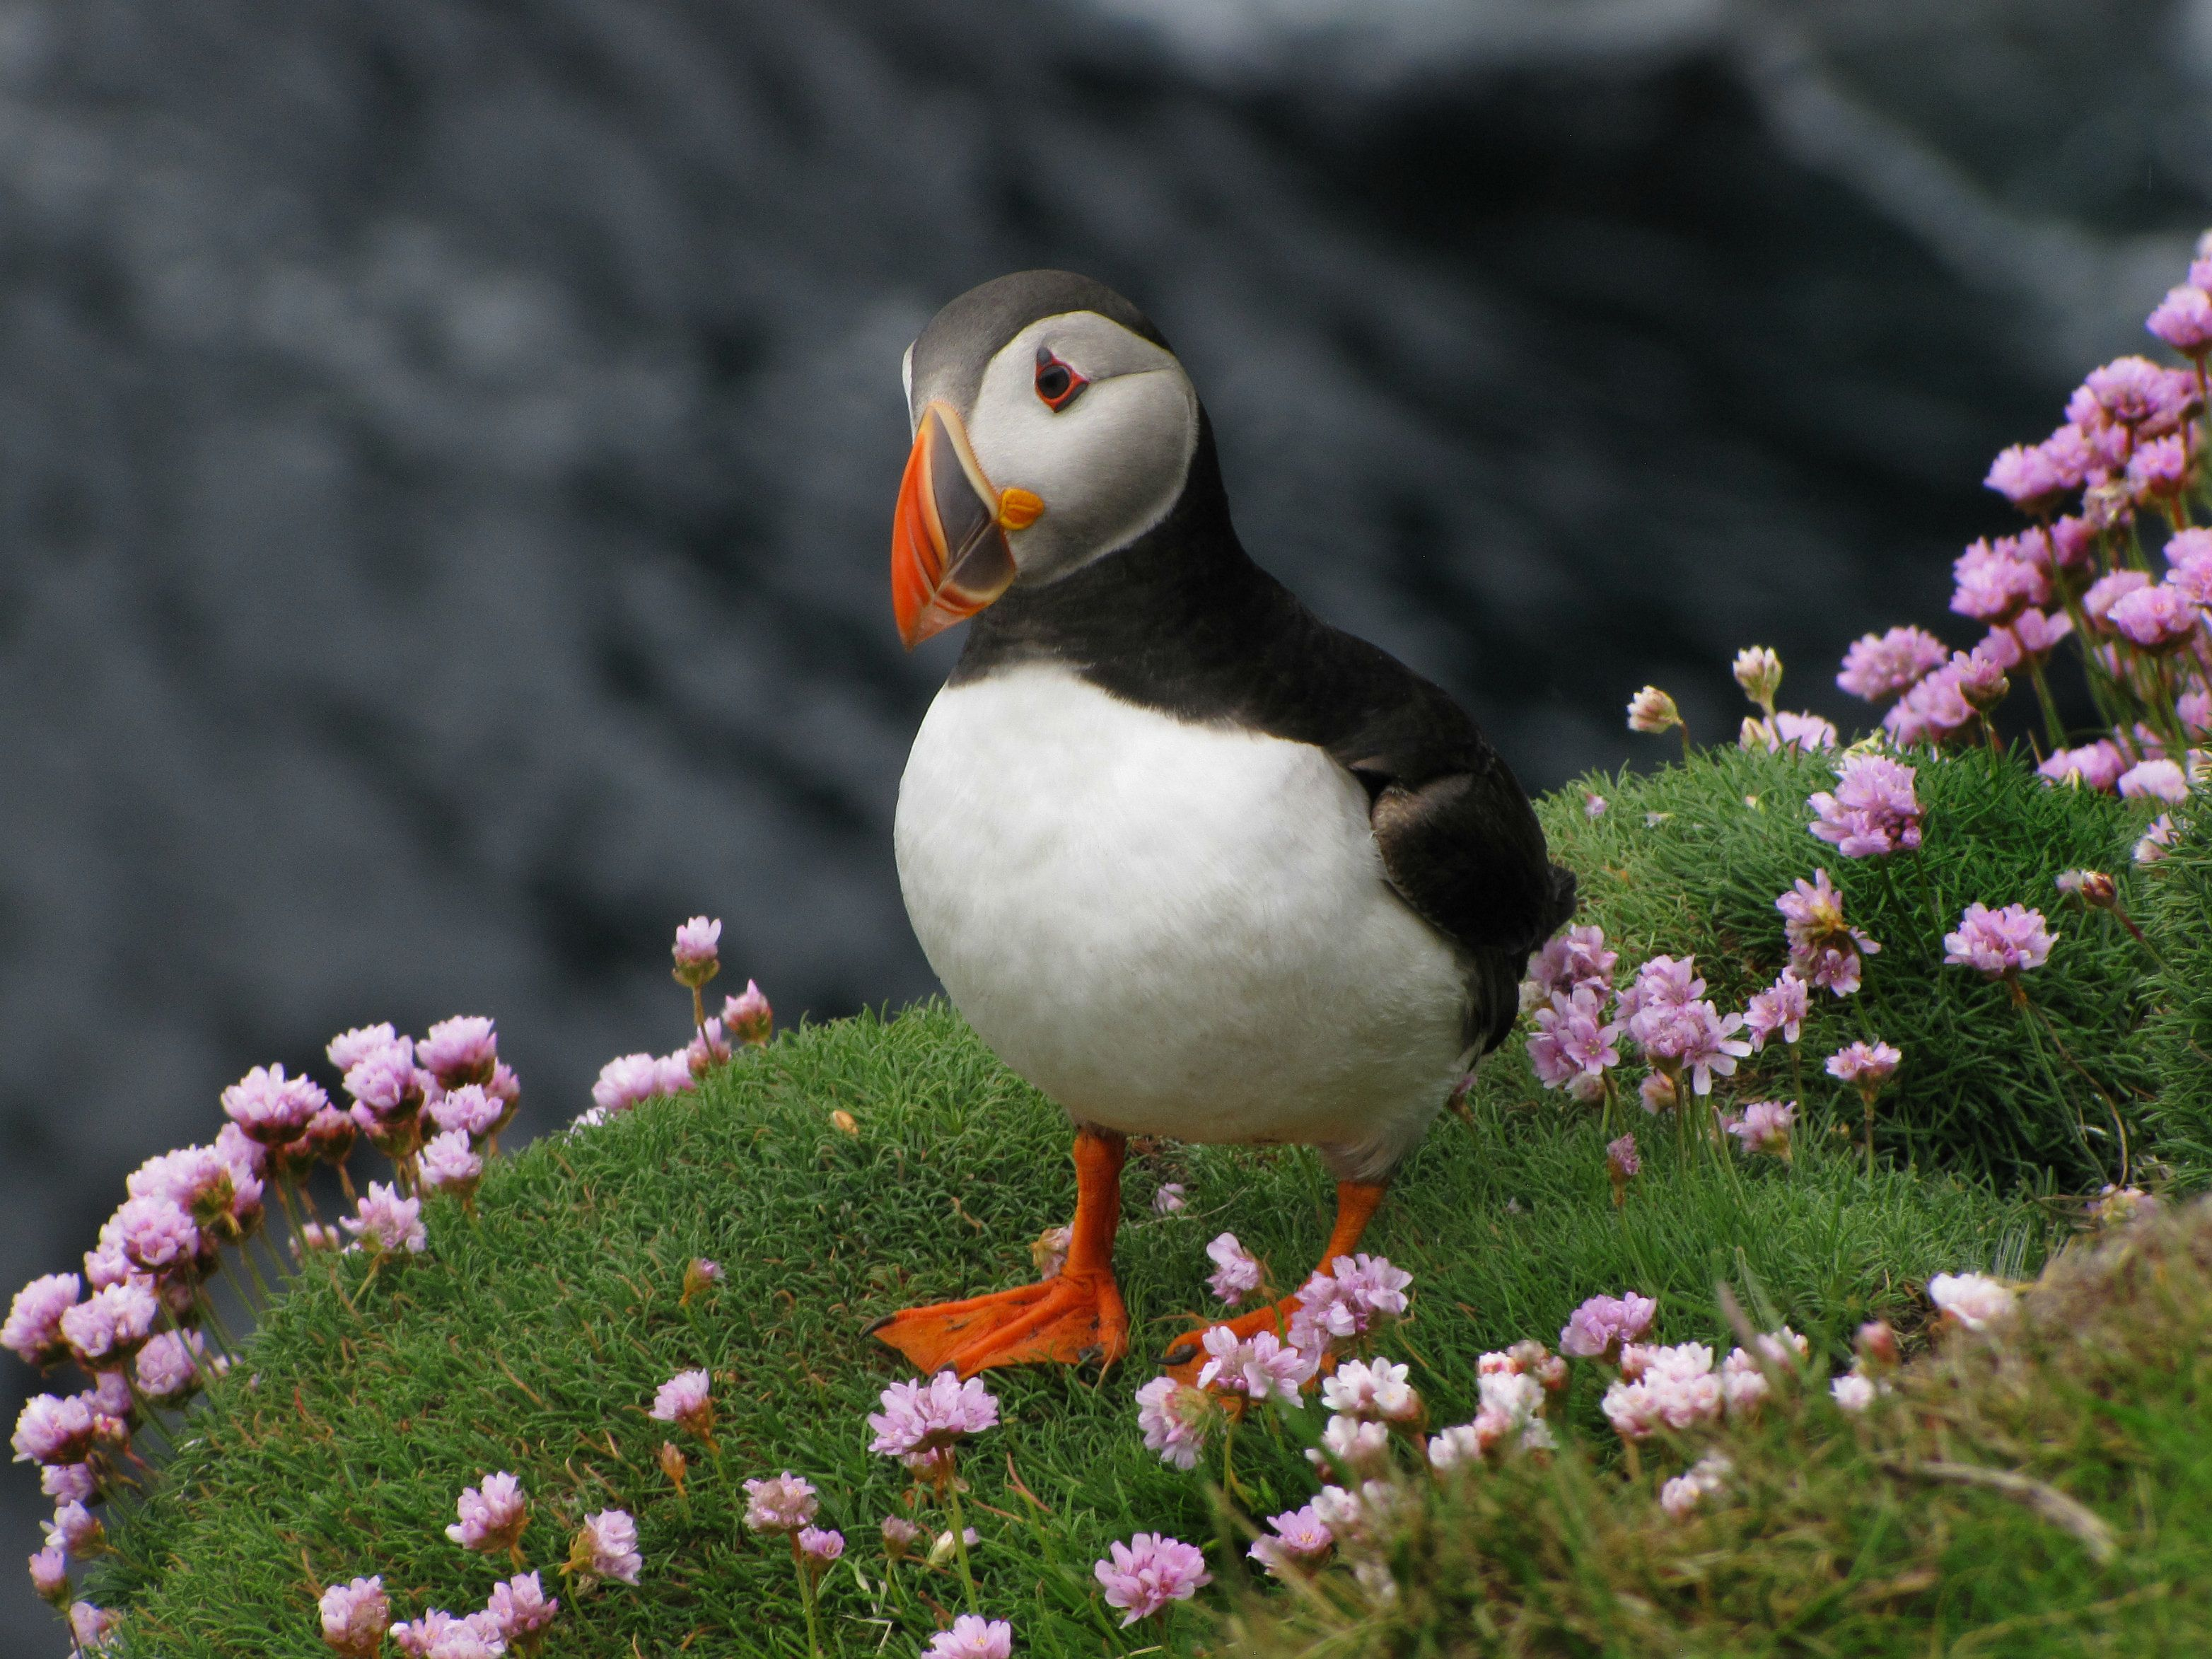 Atlantic Puffin sitting on seaside cliff amidst pink wildflowers in the Shetland Islands, part of the United Kingdom.June 2010